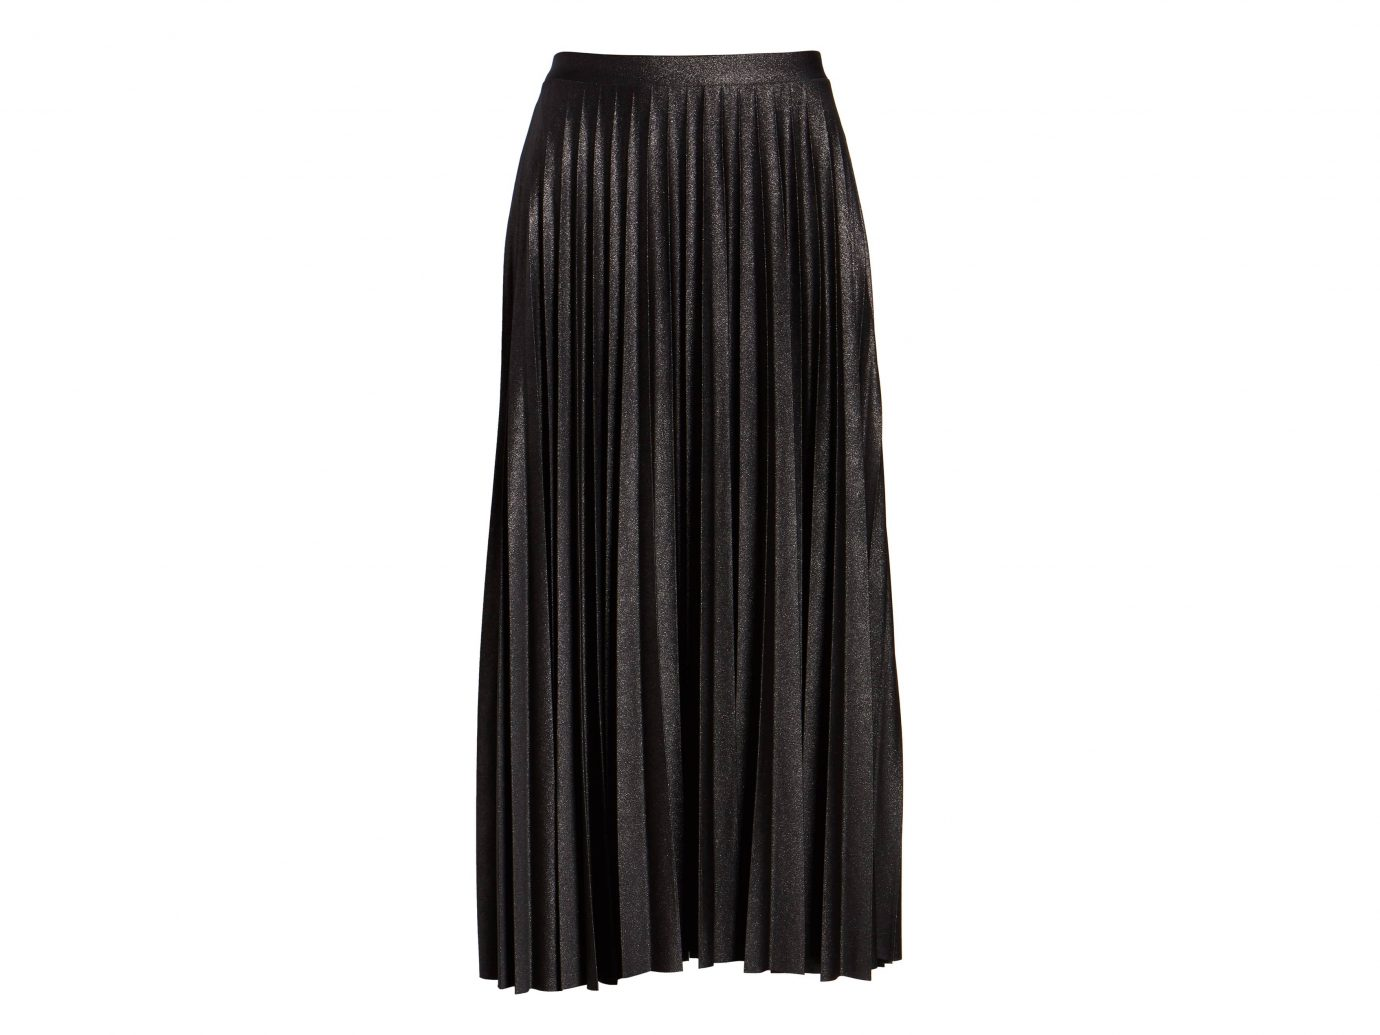 HALOGEN Metallic Pleat Midi Skirt